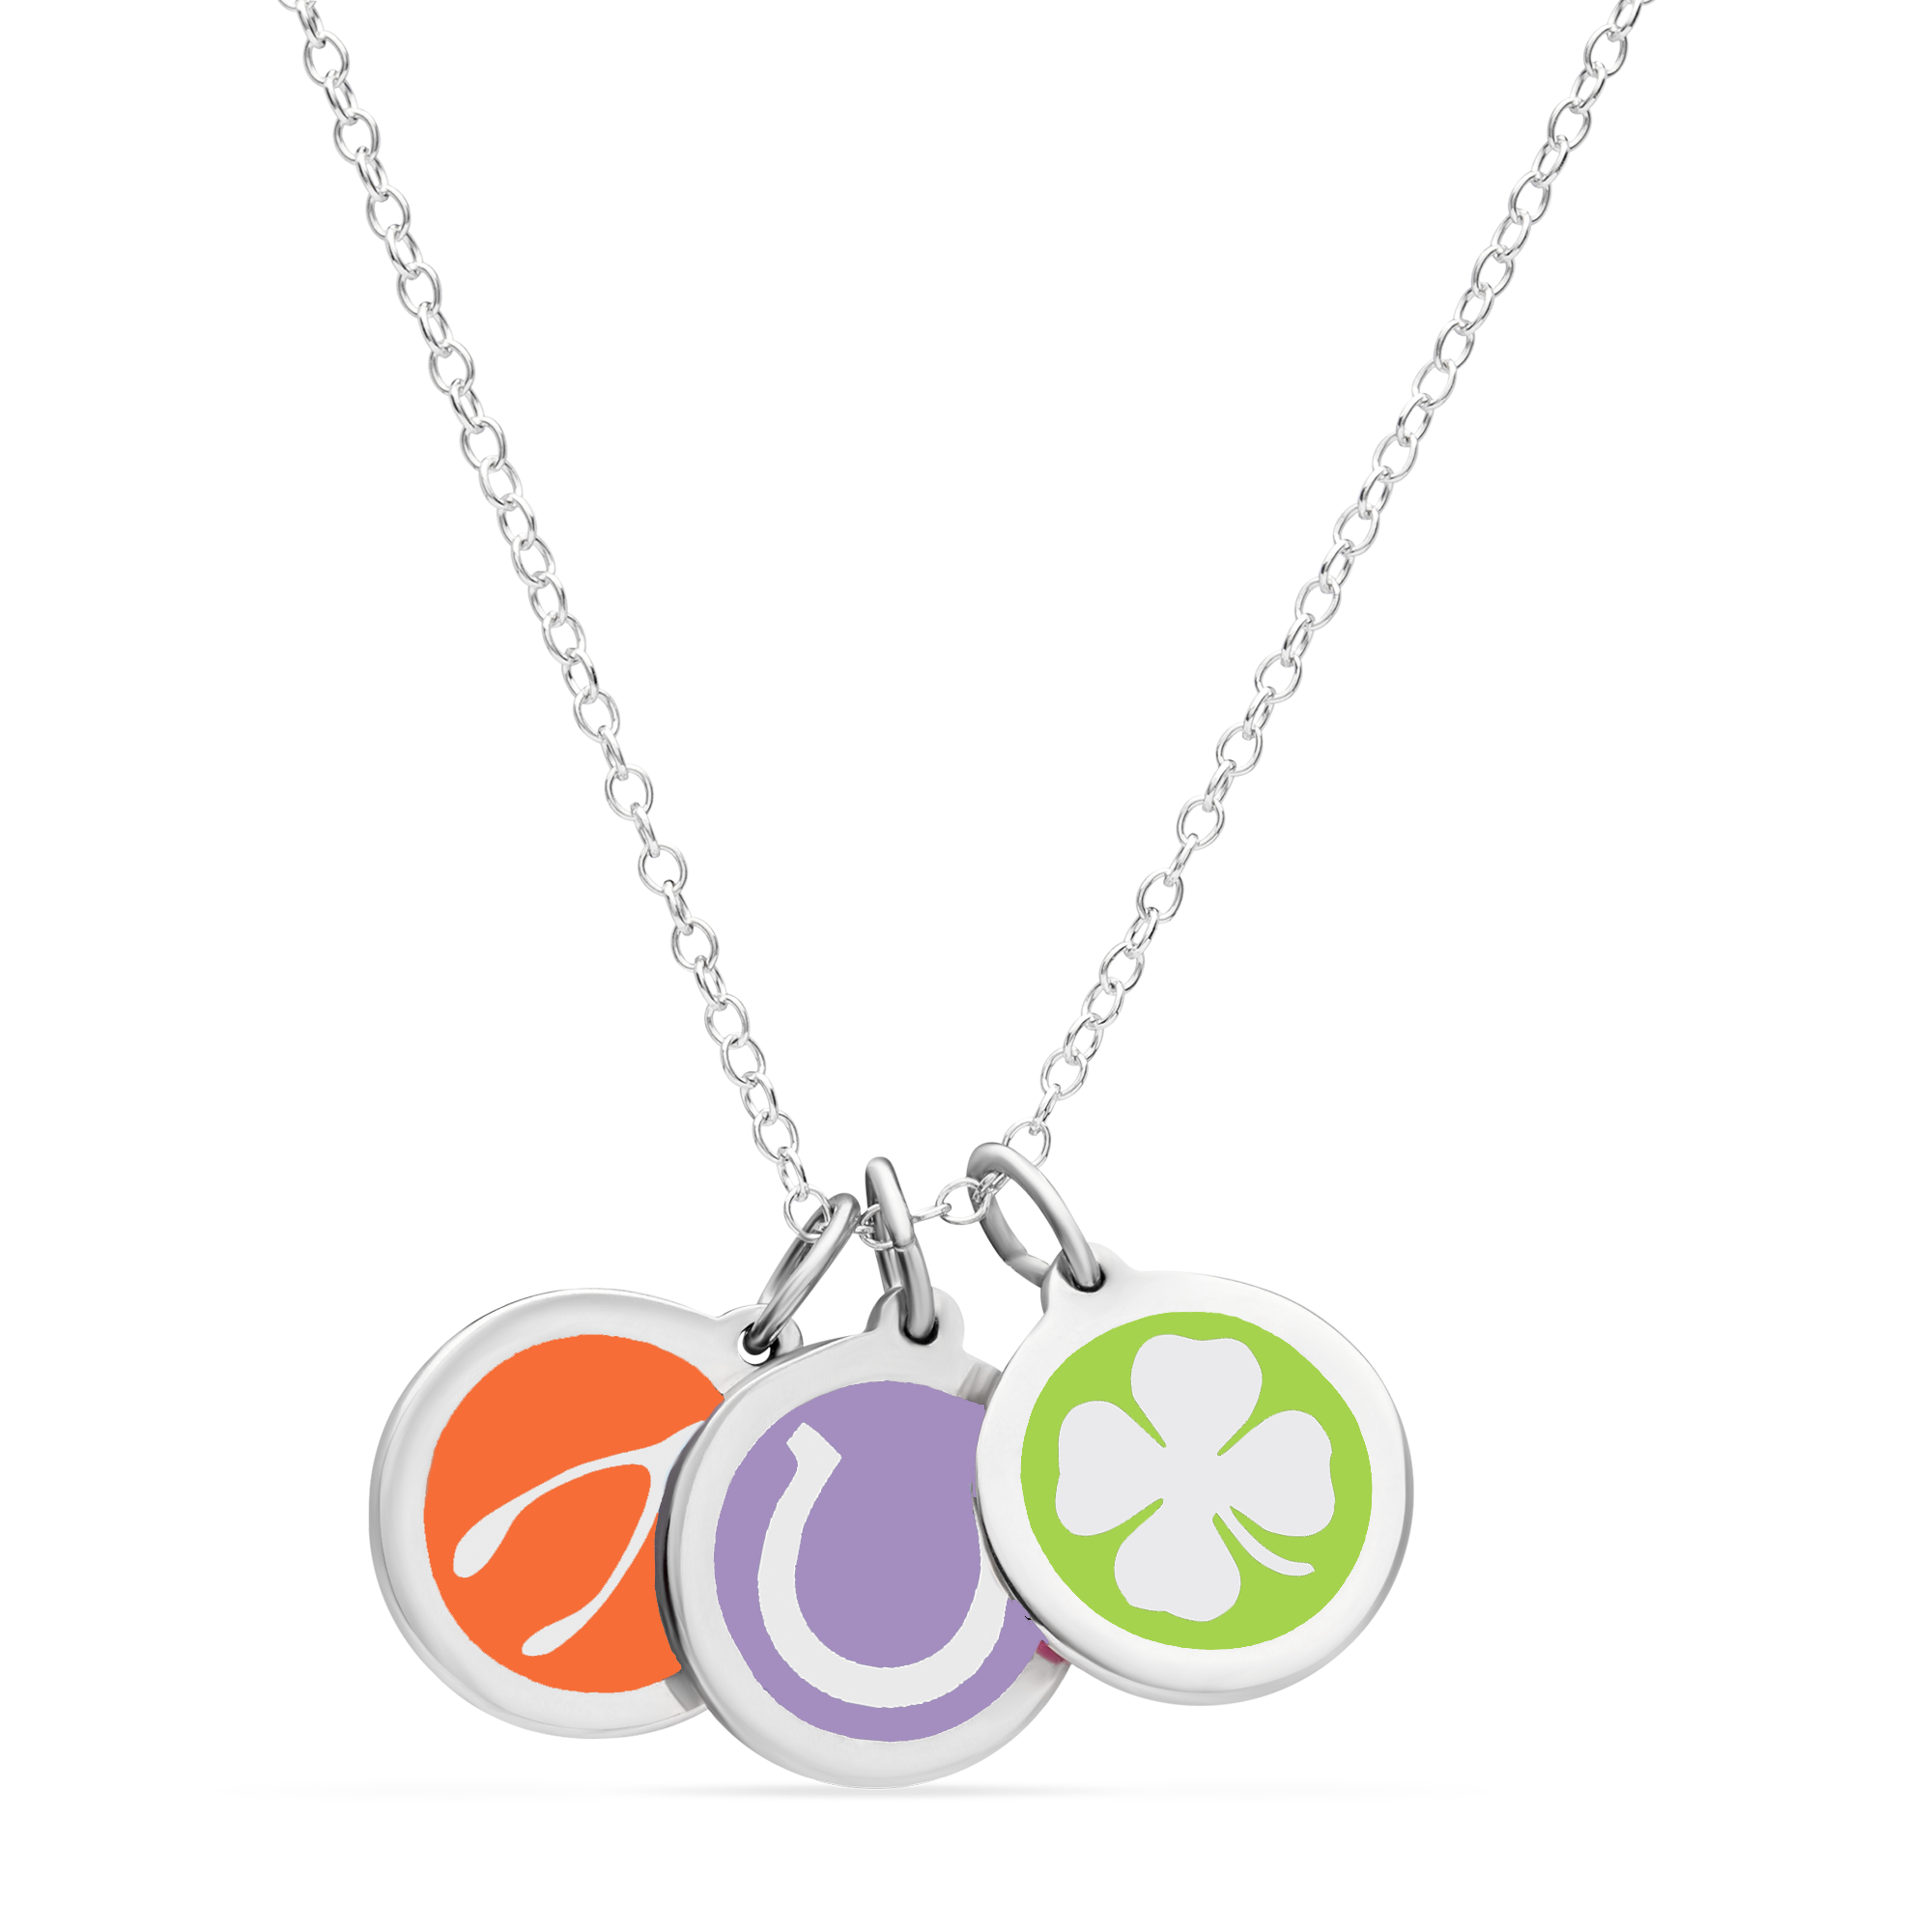 LUCKY CHARM NECKLACE sterling silver with rhodium plate